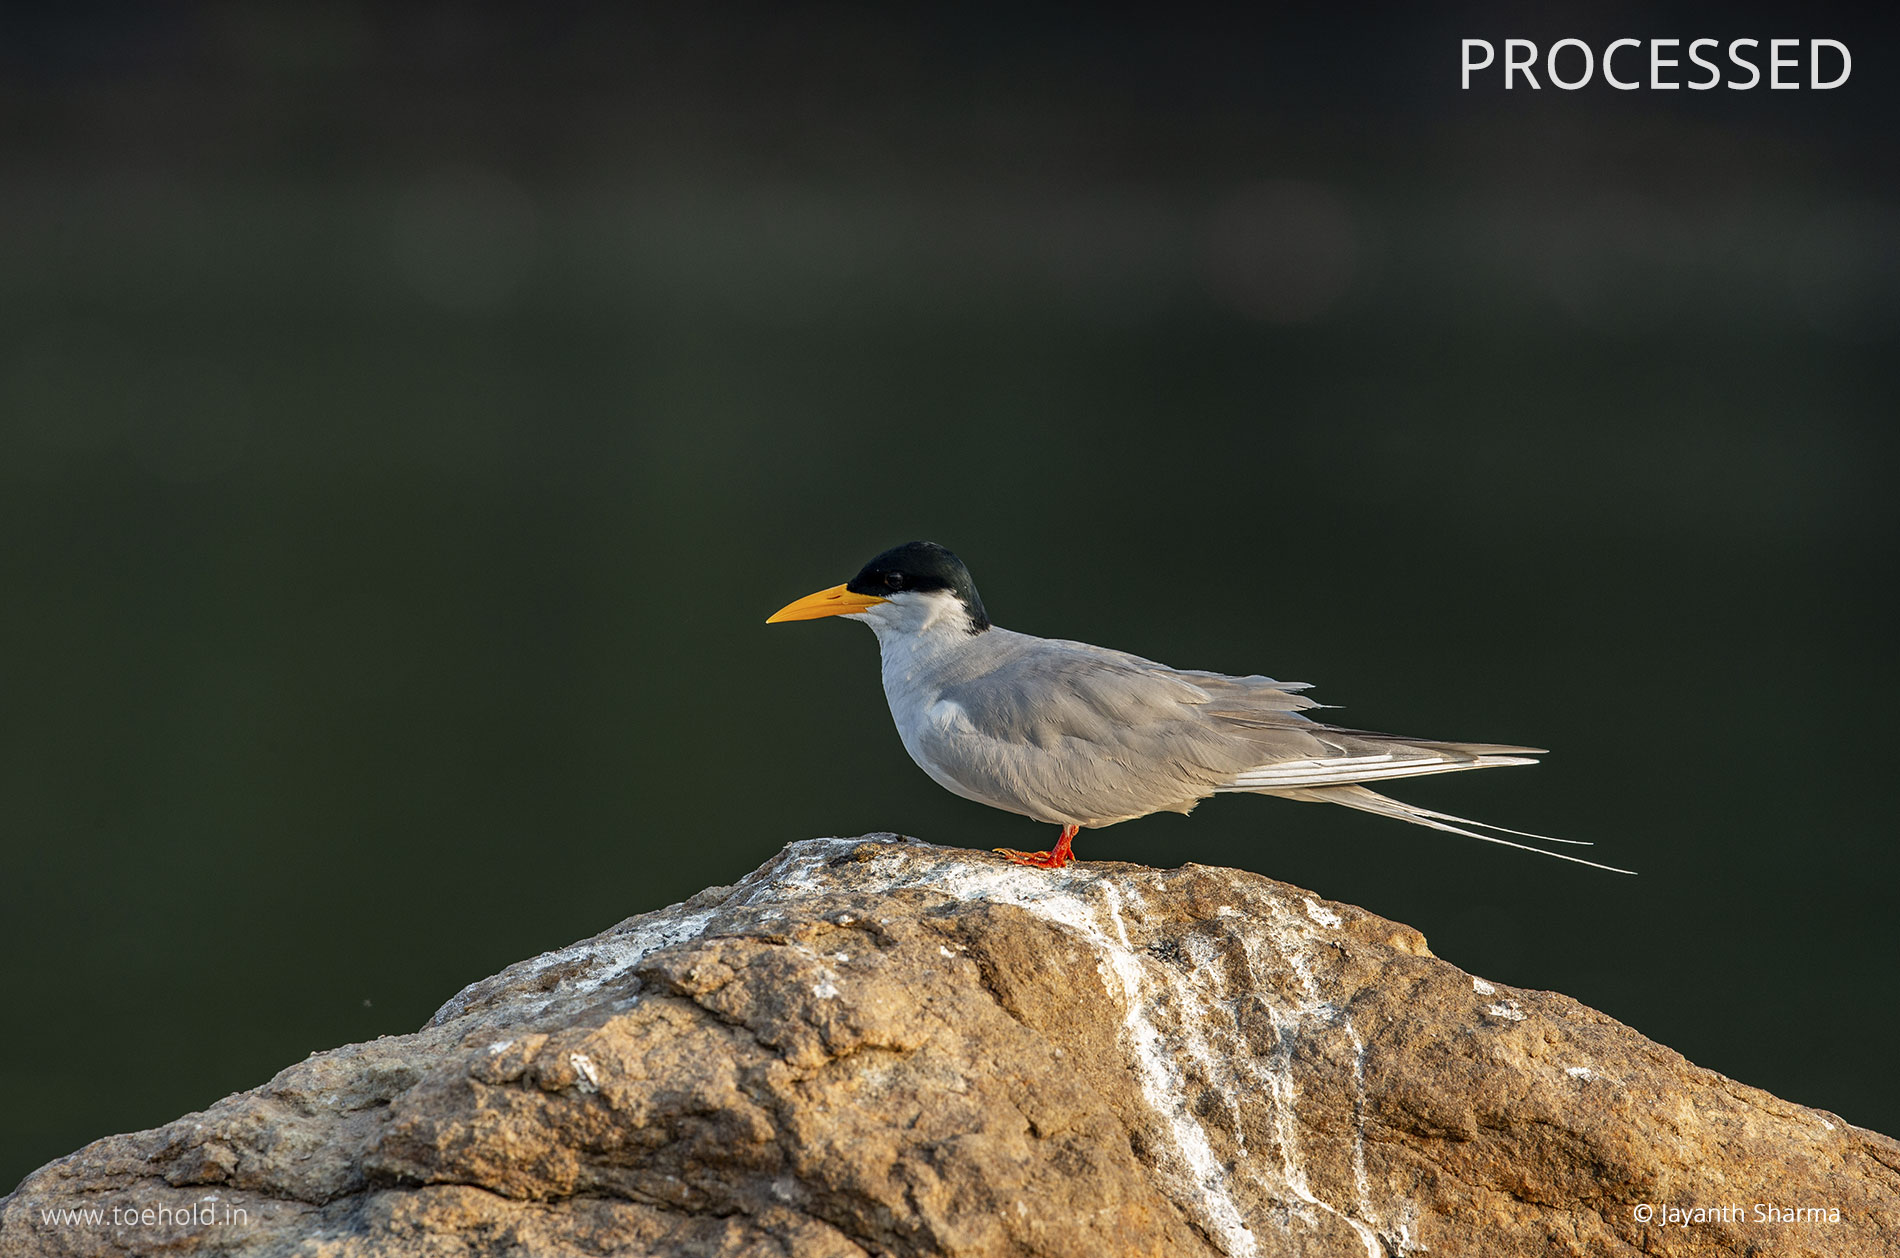 River tern processed